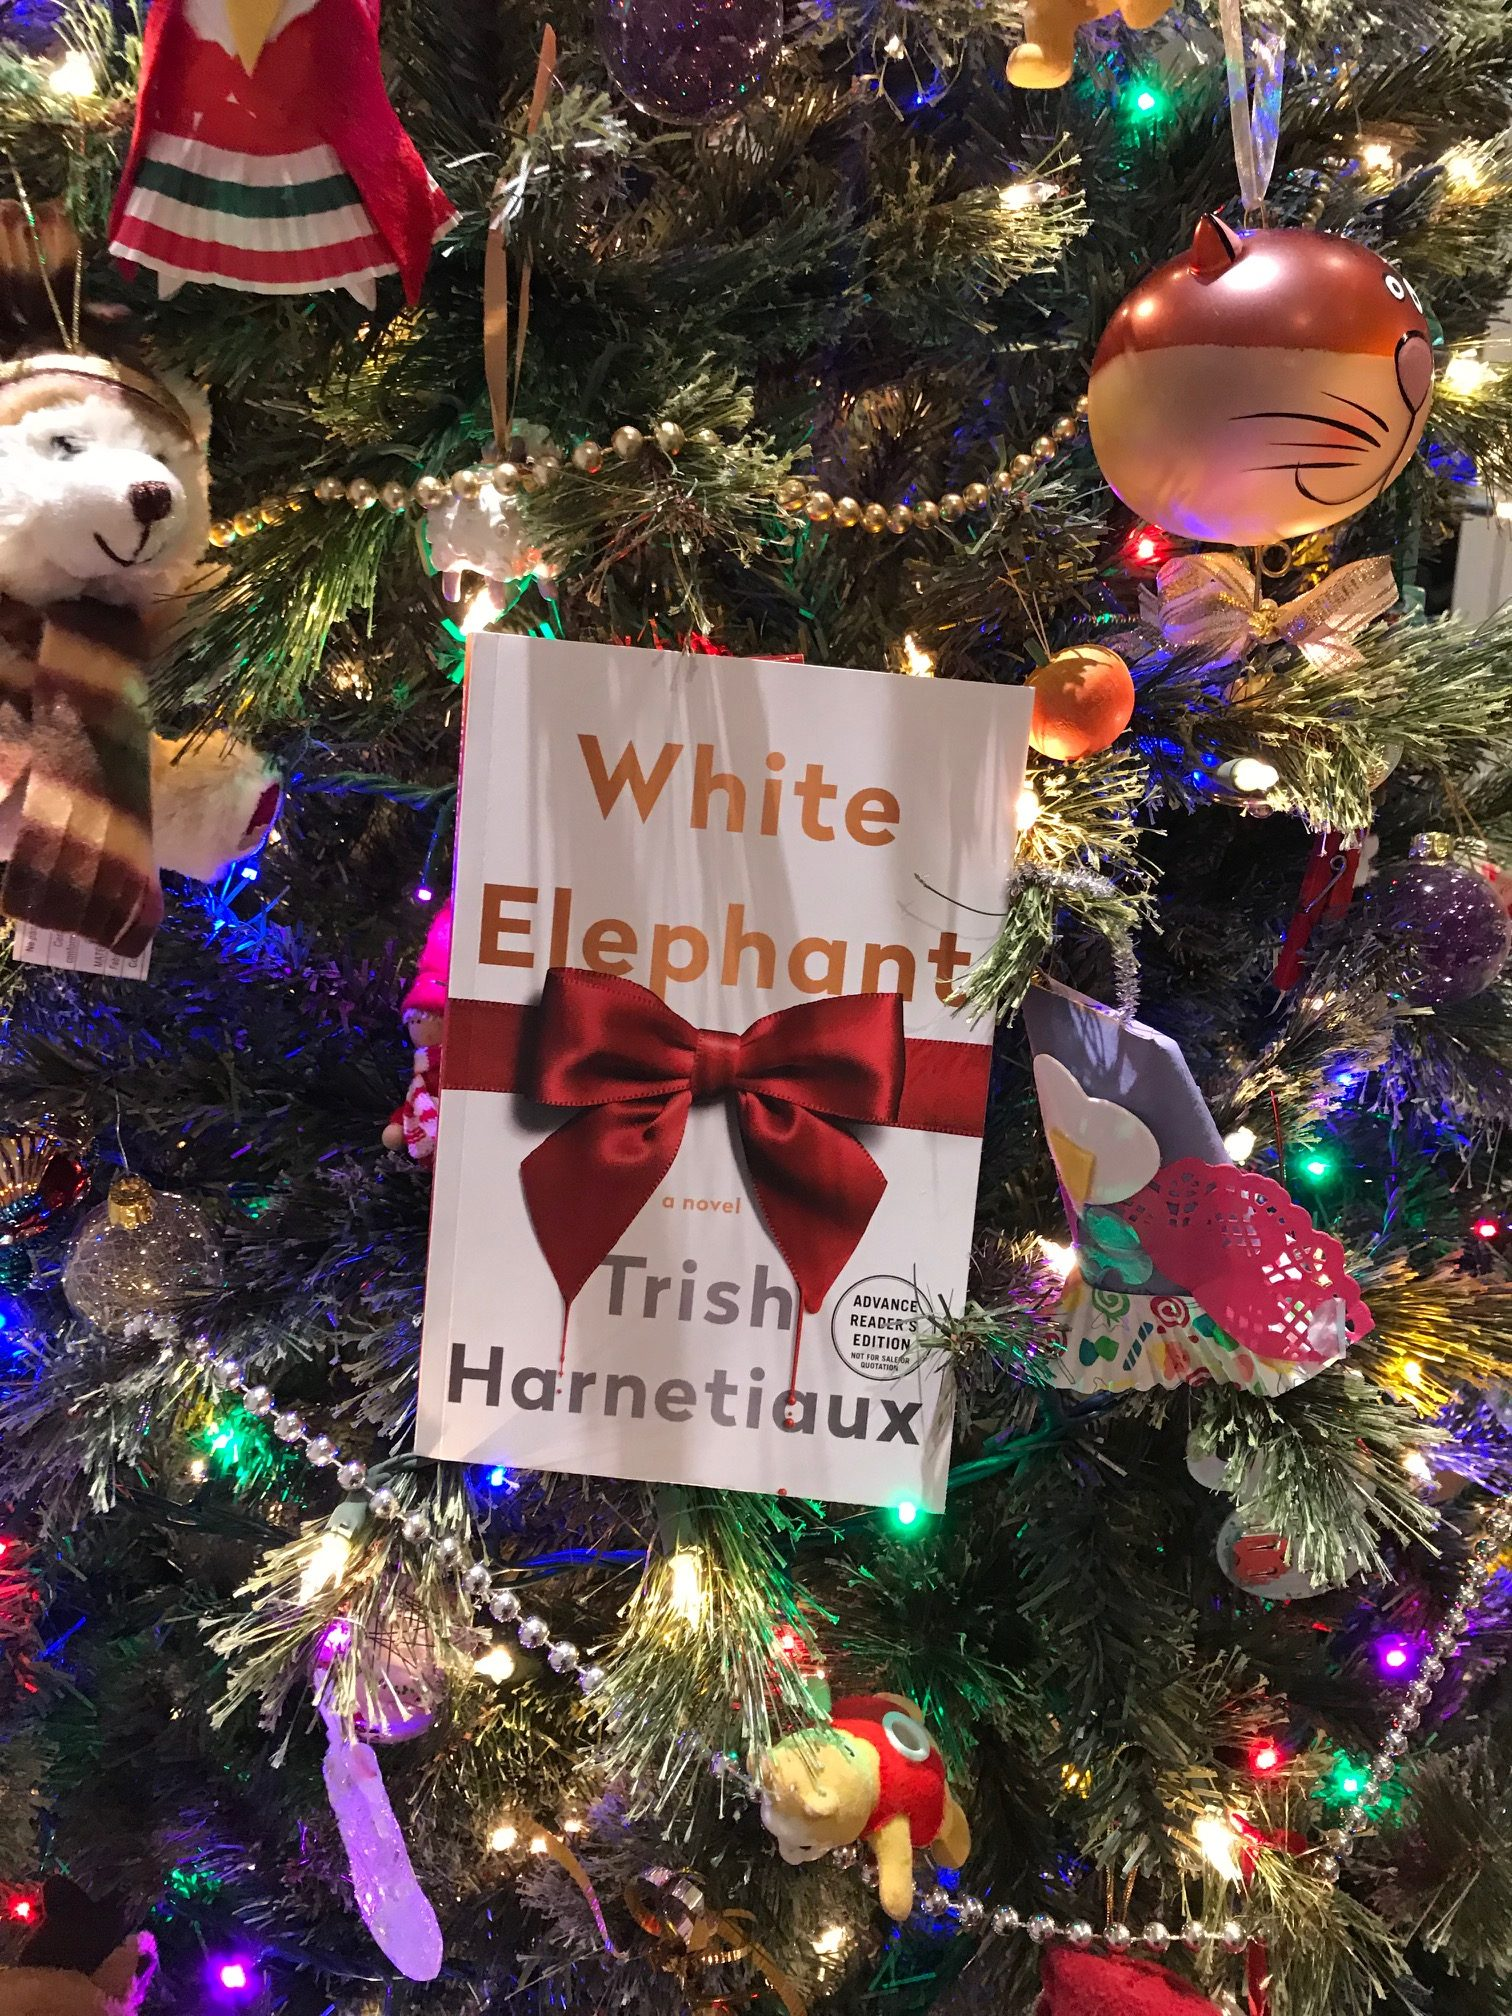 Book Review: White Elephant by Trish Harnetiaux